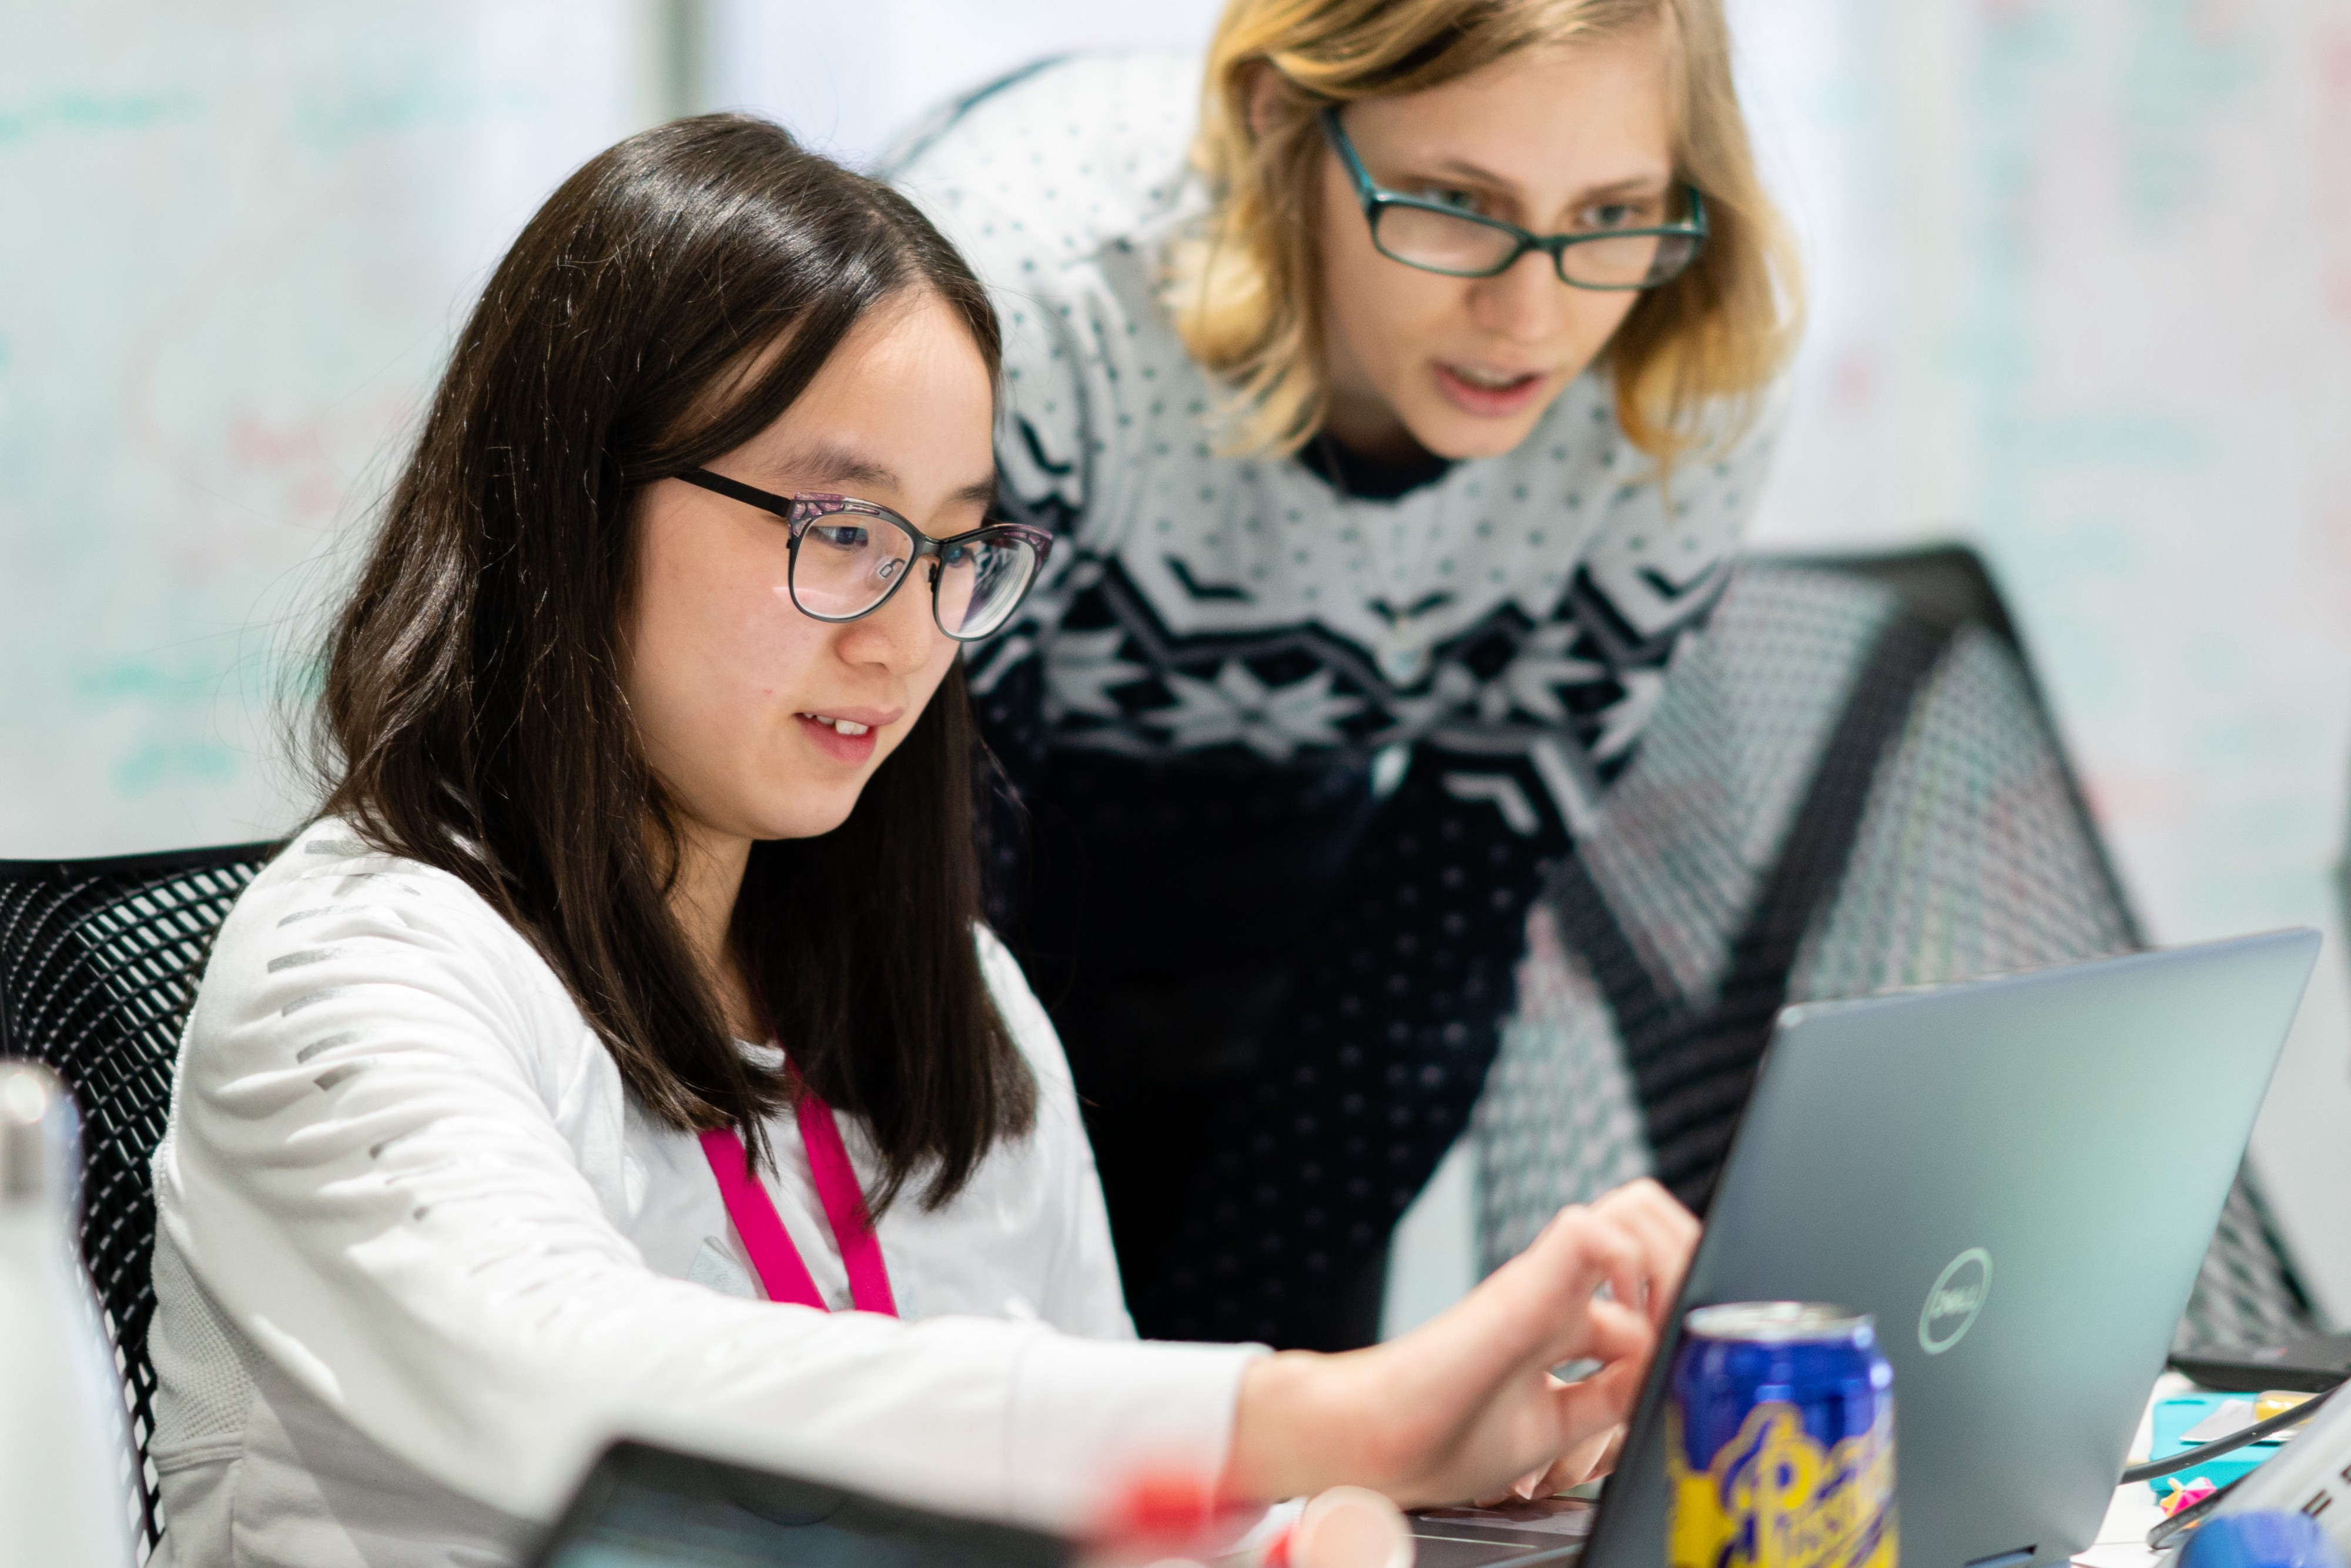 Two young women working together at a laptop